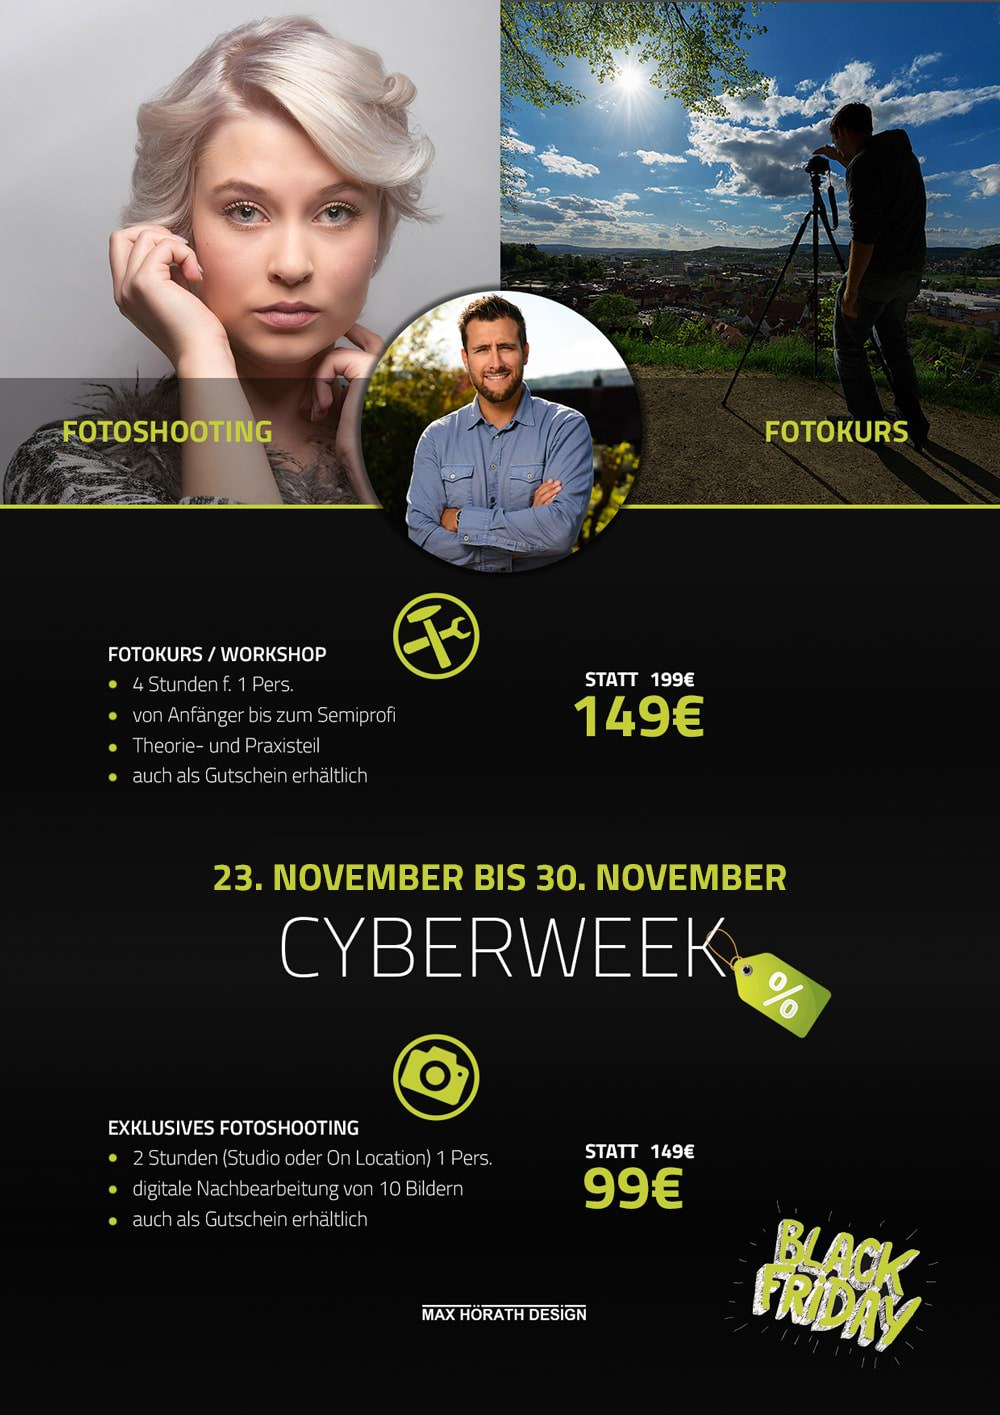 Cyber Week Black Friday 2015 – Satte Rabatte